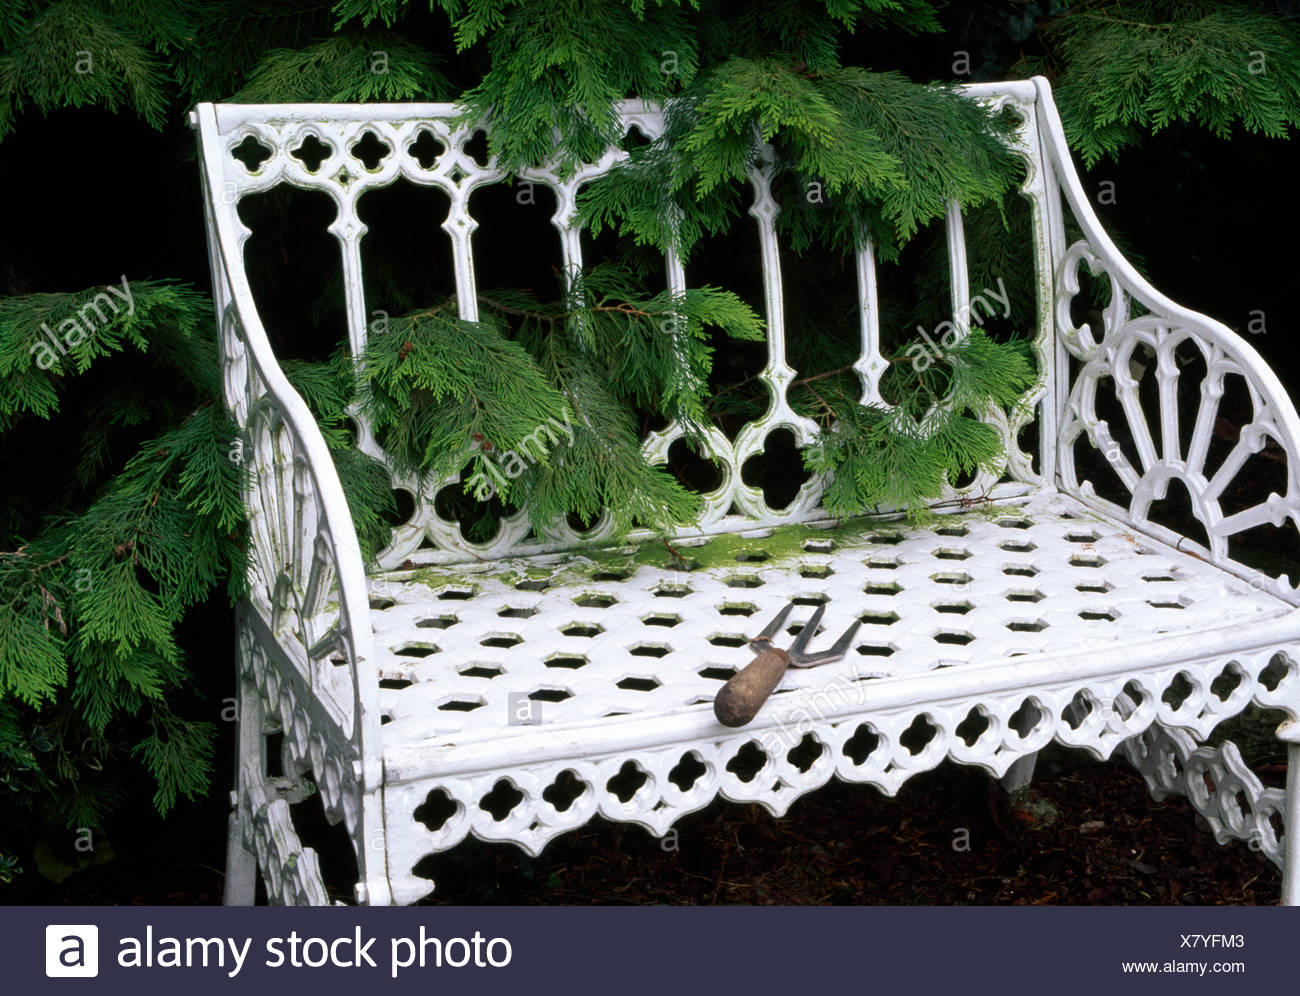 Small Garden Bench Small Garden Fork On A White Wrought Iron Garden Bench In Front Of